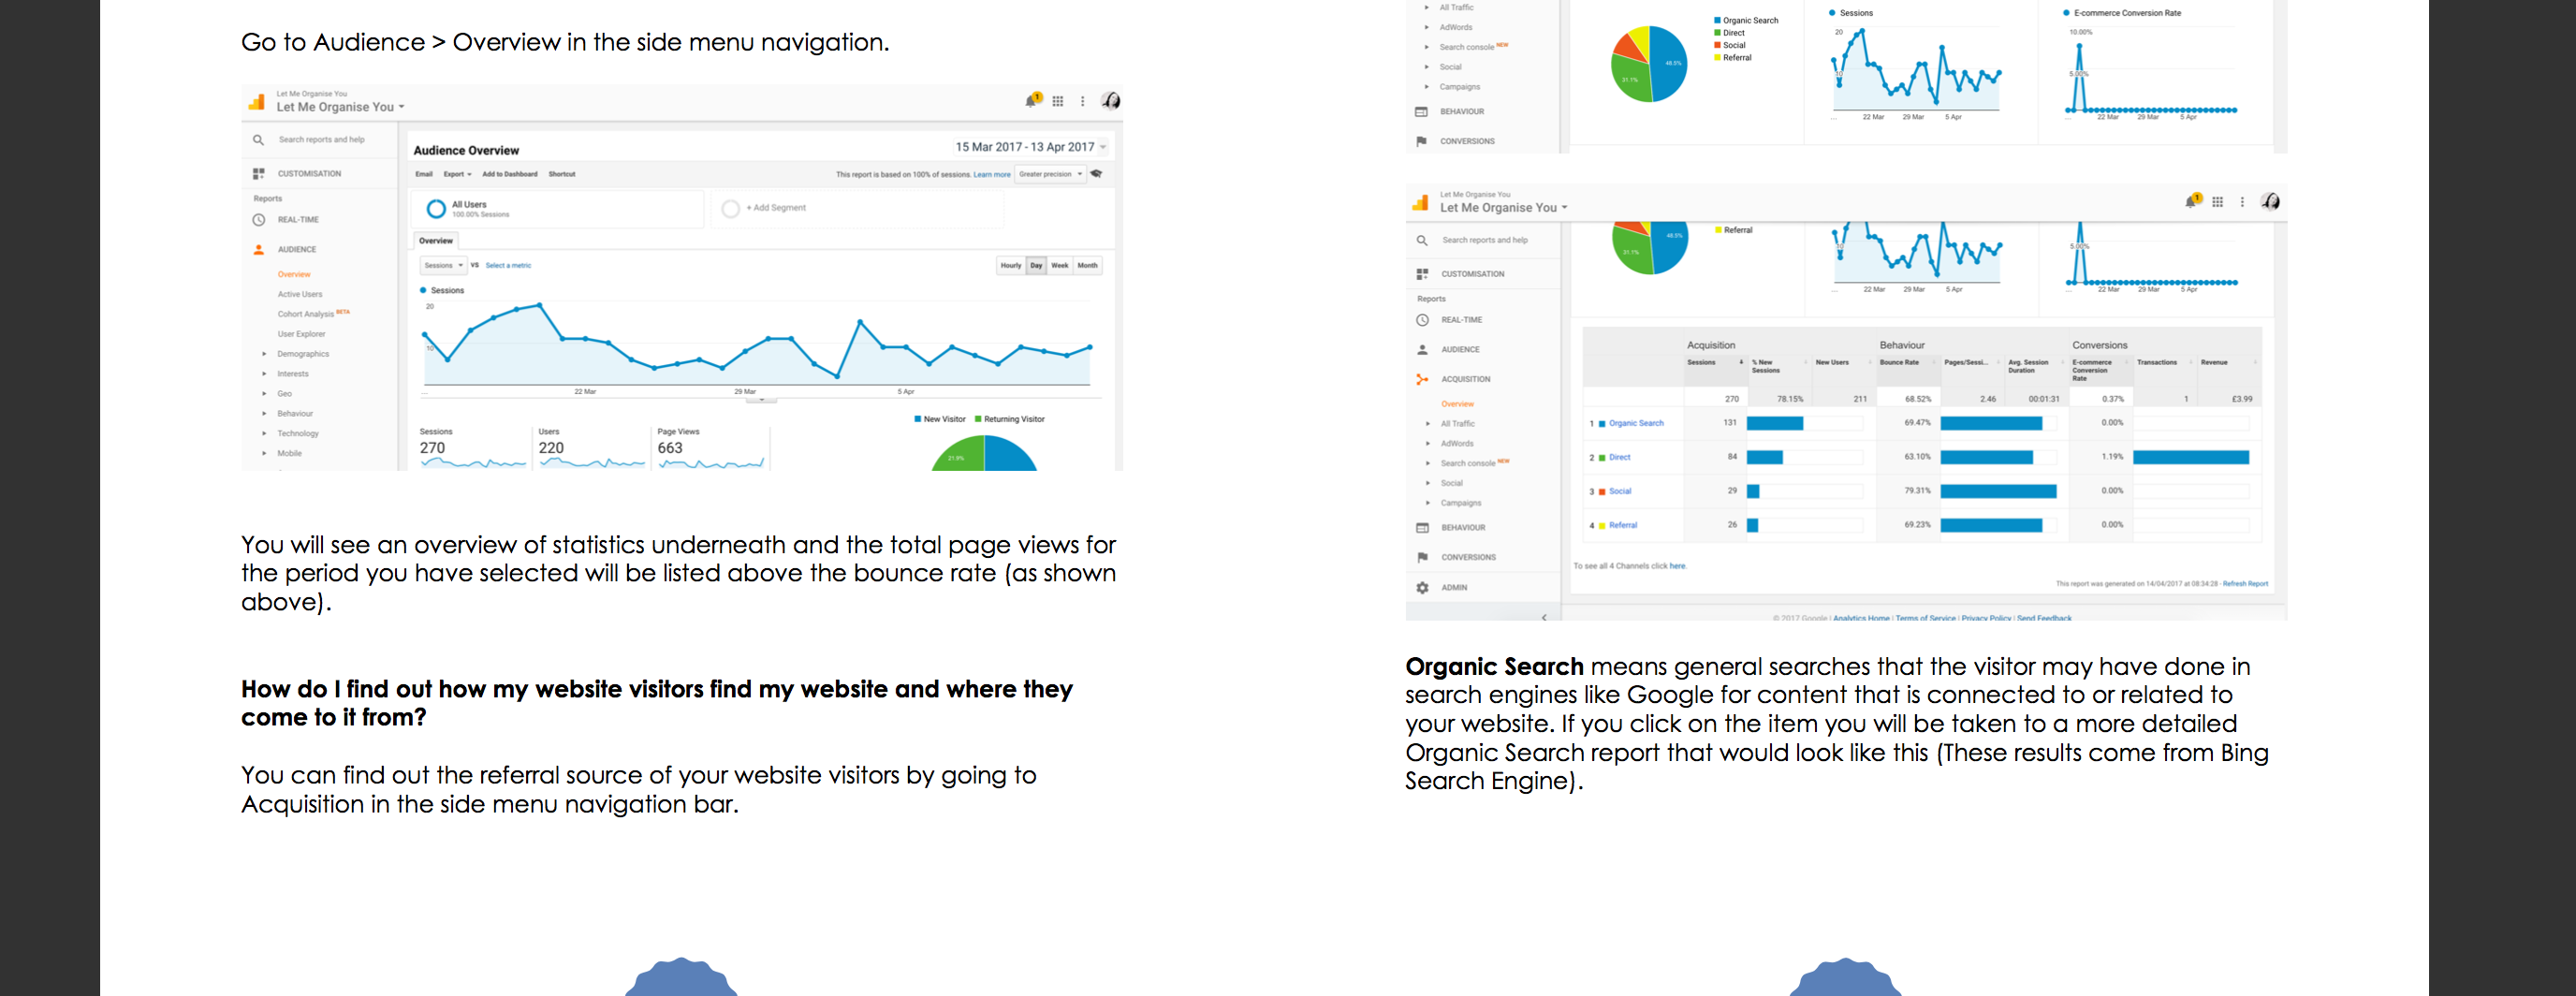 Google Analytics eBook Content Gallery